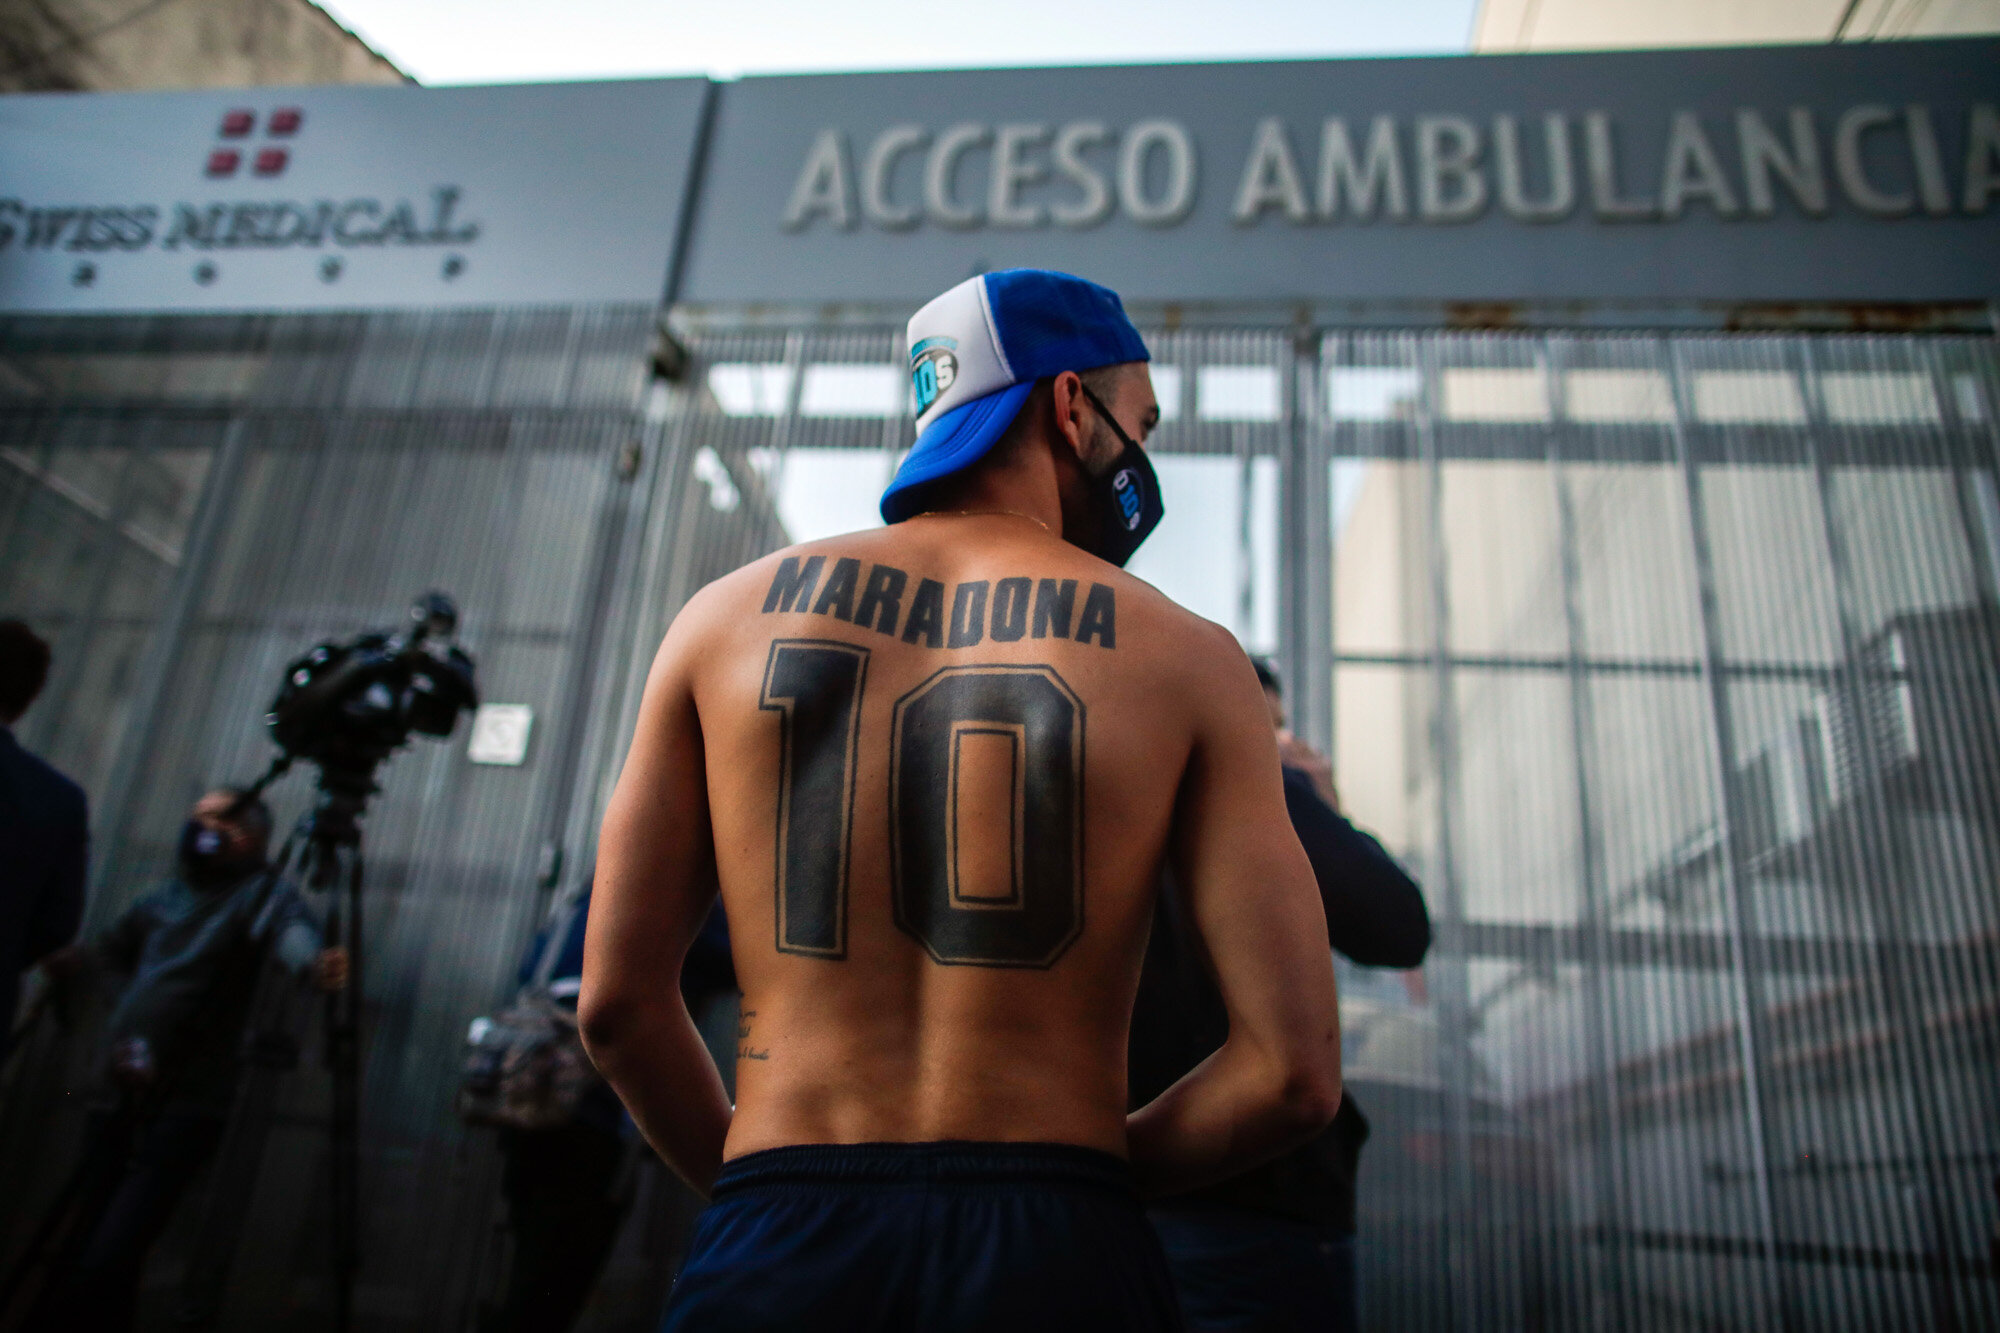 Soccer fans gather outside Clinica Olivos, where former soccer star Diego Maradona will undergo surgery, in Buenos Aires, Argentina, on Nov. 3, 2020. Widely regarded as one of the greatest soccer players of all time, Maradona died on Nov. 25. He was 60. (AP Photo/Natacha Pisarenko)